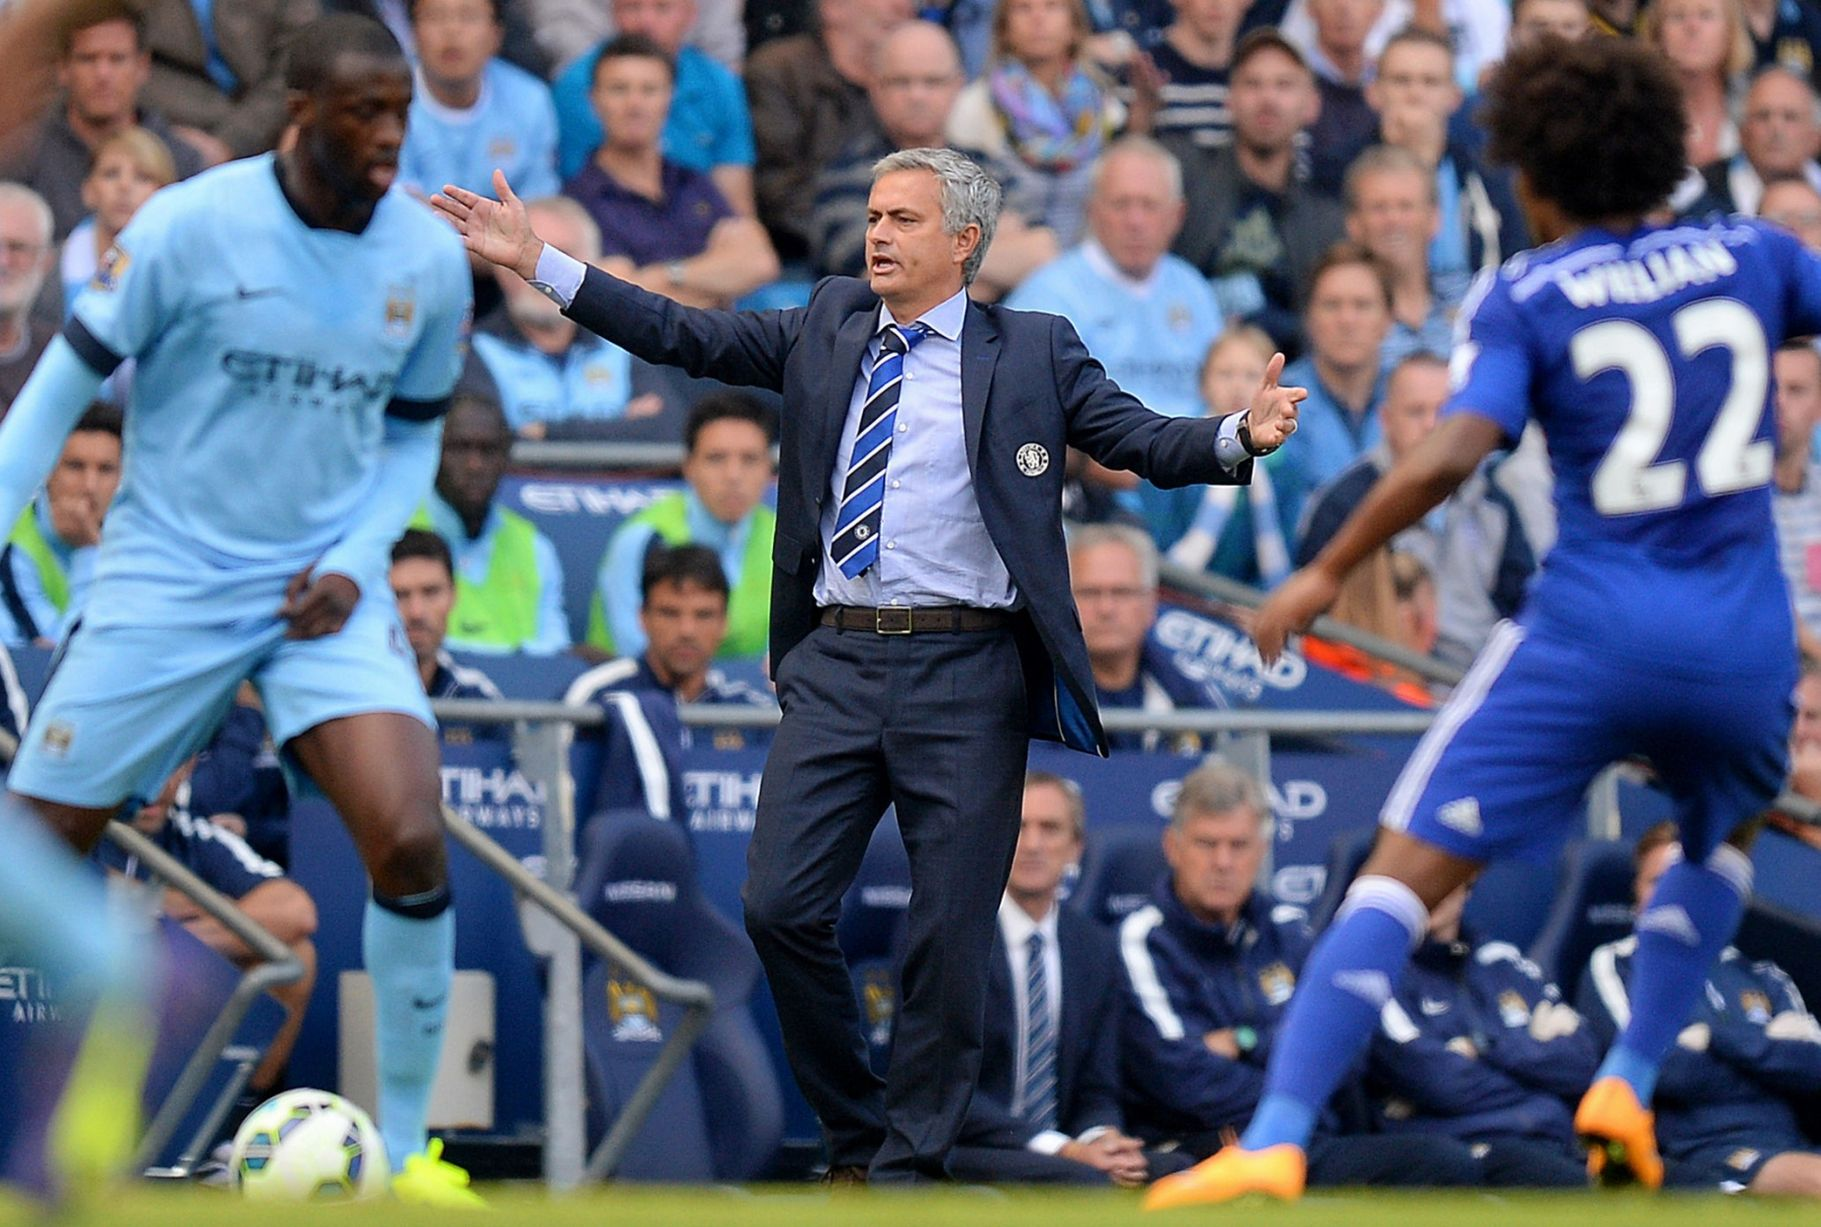 Manchester City Chelsea: EPL So Far; How The Top Teams Have Fared